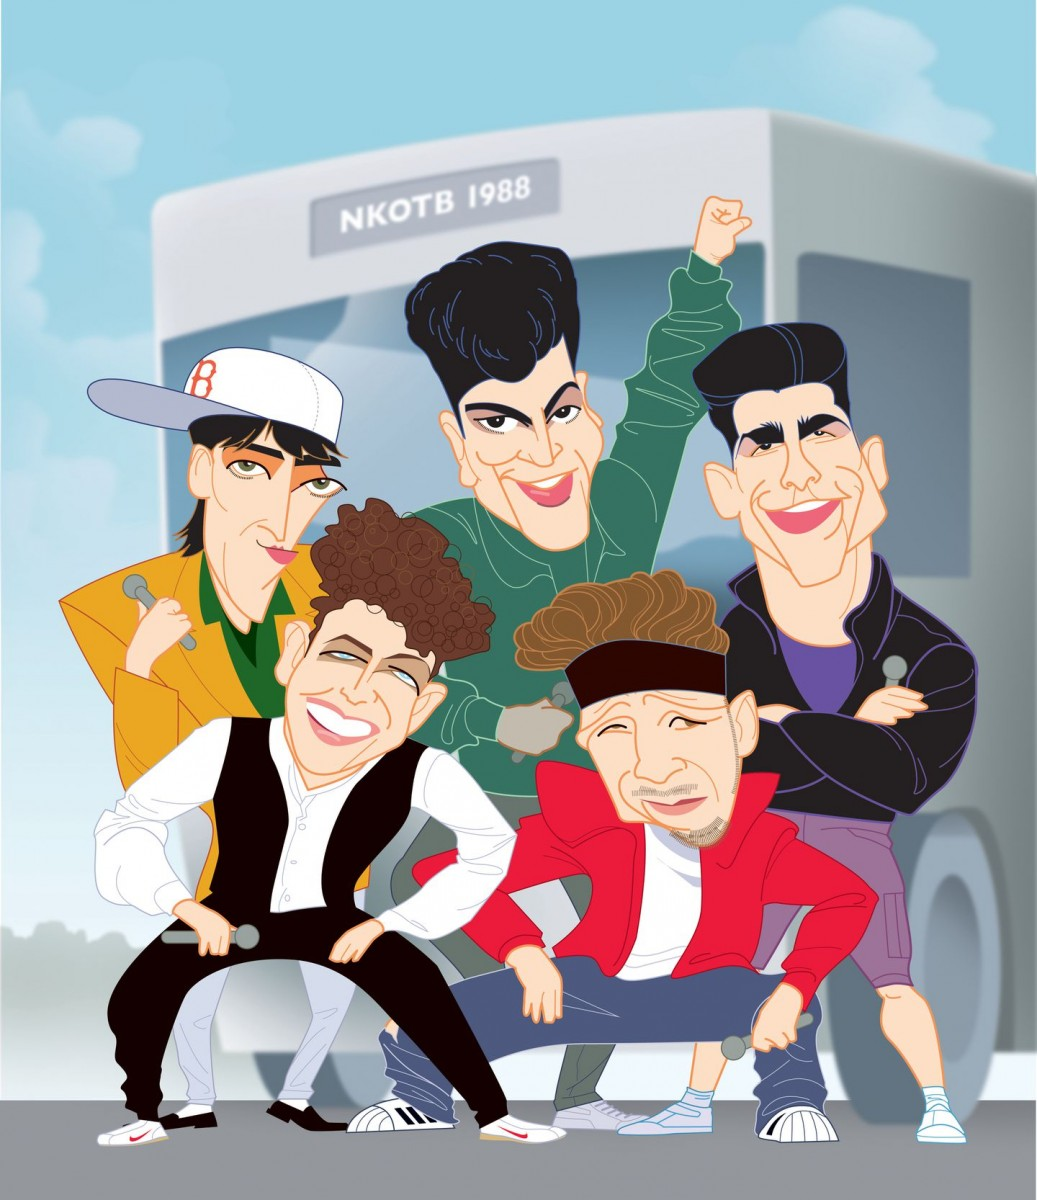 Web Side Stories: Nuestras Boybands favoritas (I): Chicos guapos, música pegadiza y hits como churros.